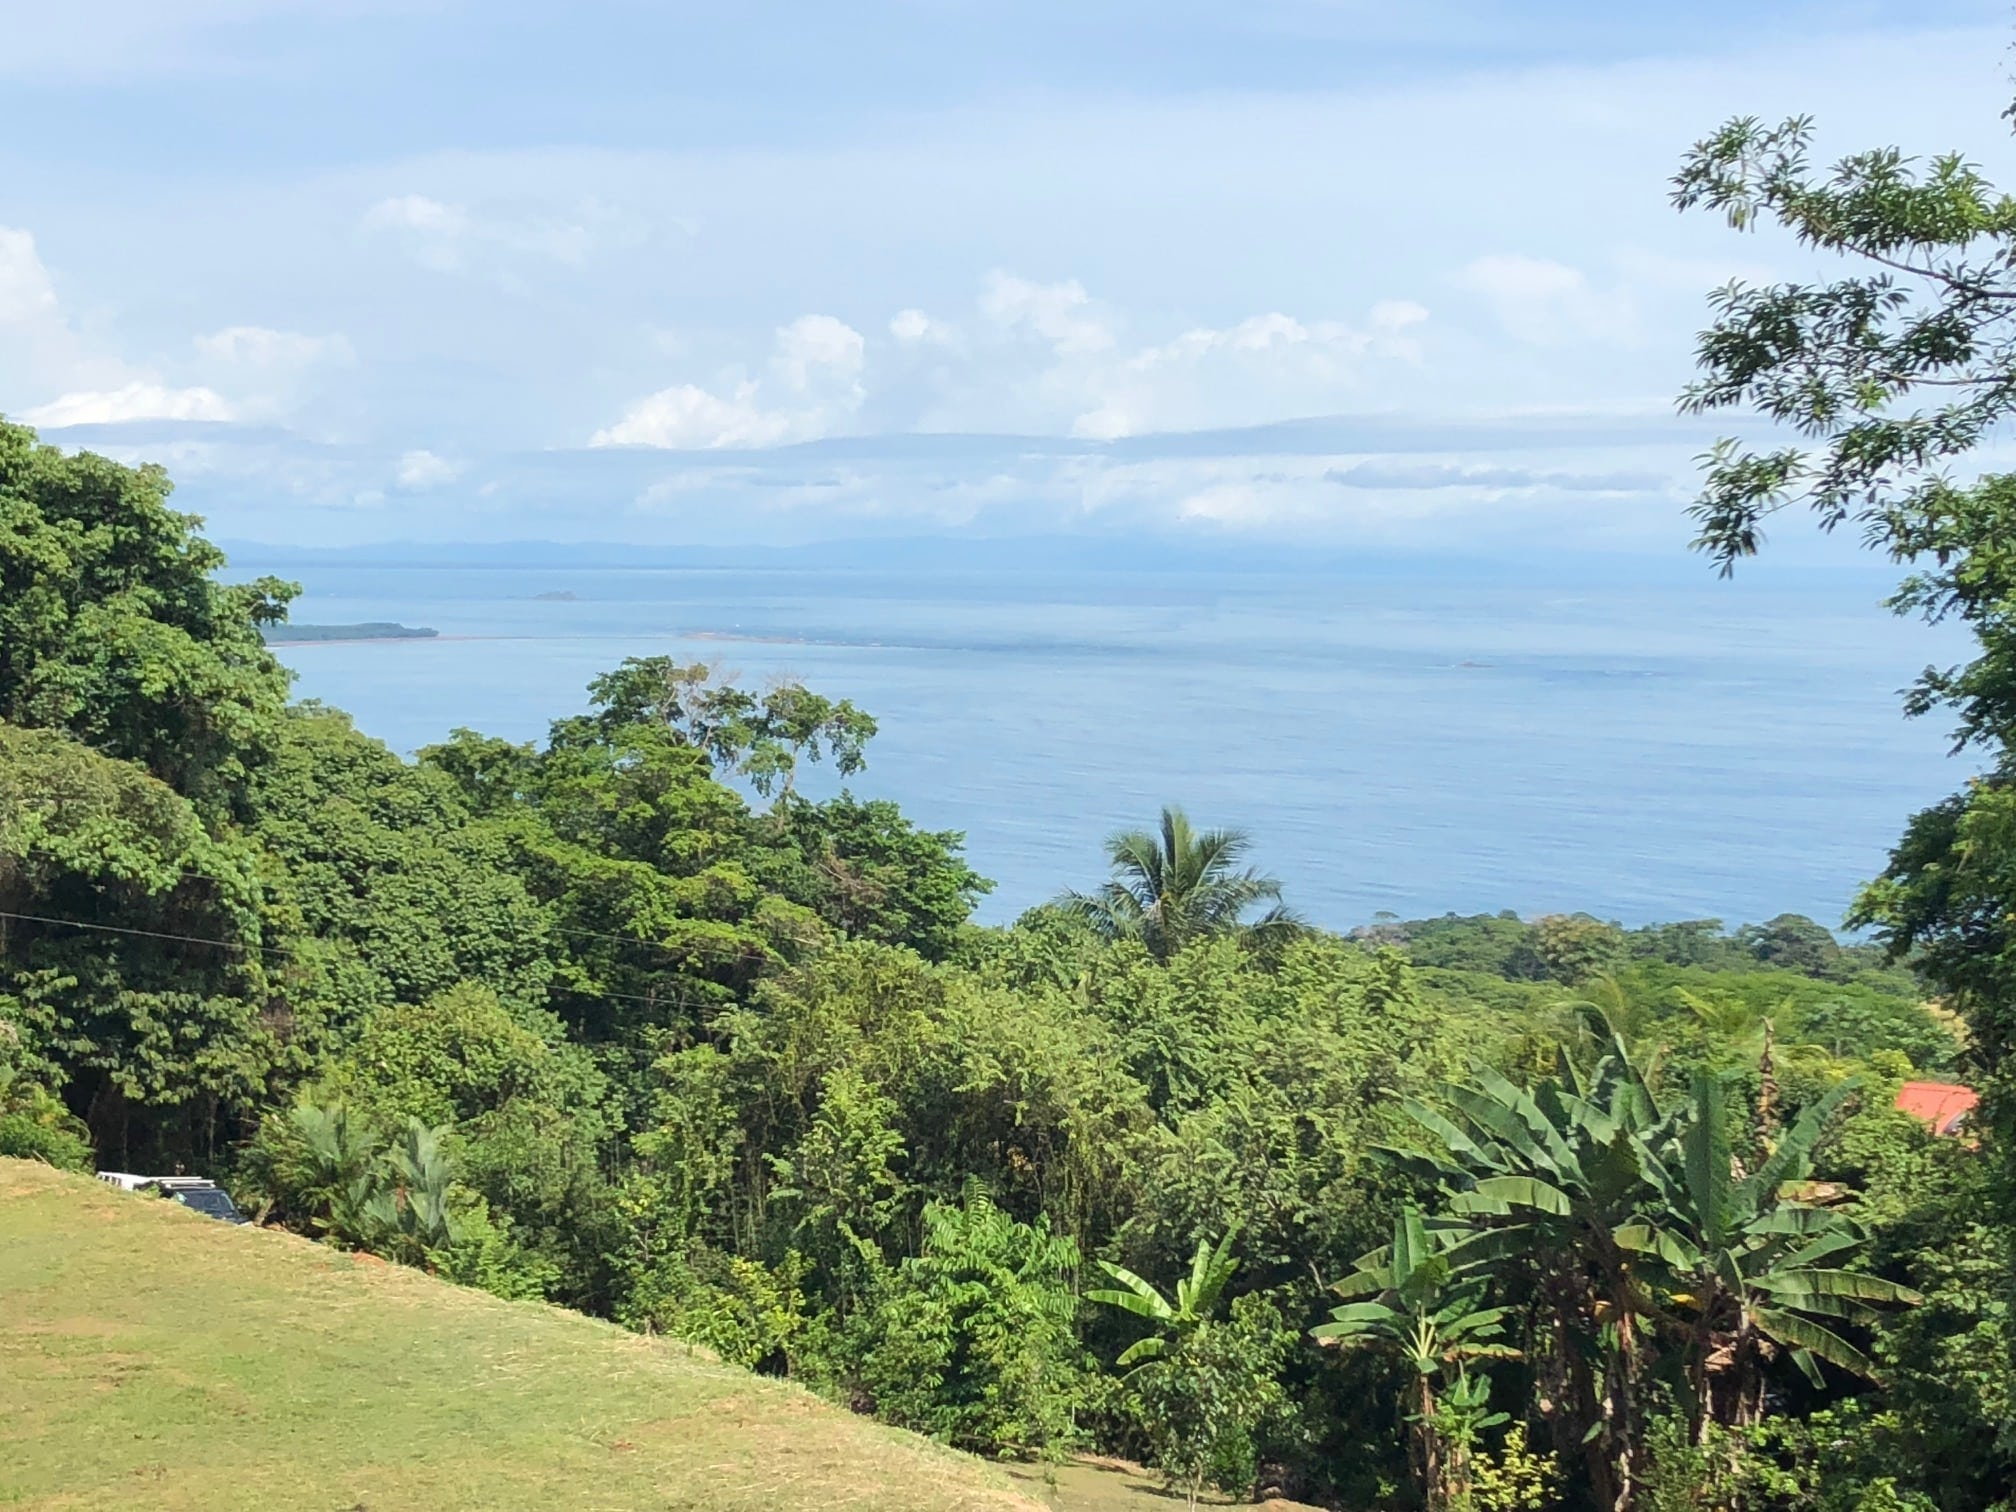 0.74 ACRES - Stunning Ocean View Property In The Heart Of Escaleras!!!